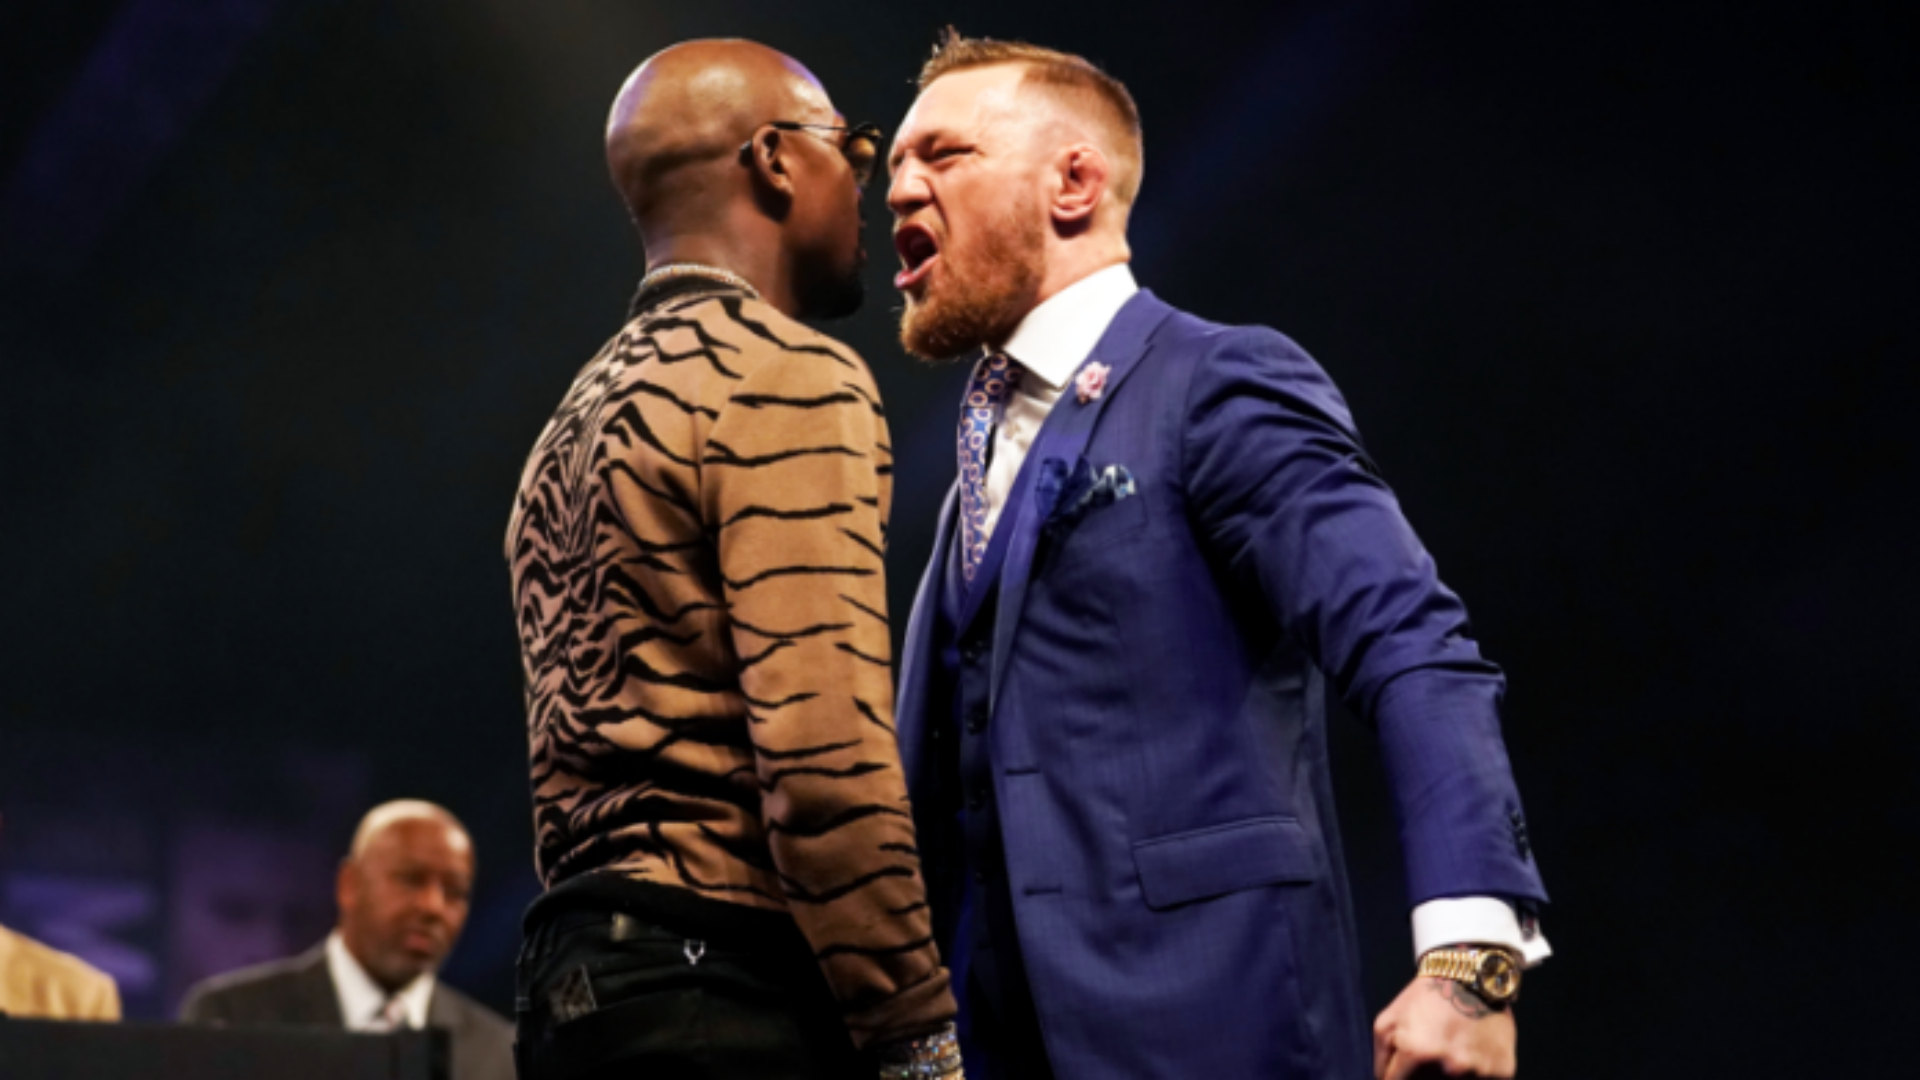 Tons of Tickets for the Mayweather-McGregor Megafight Are Still Available